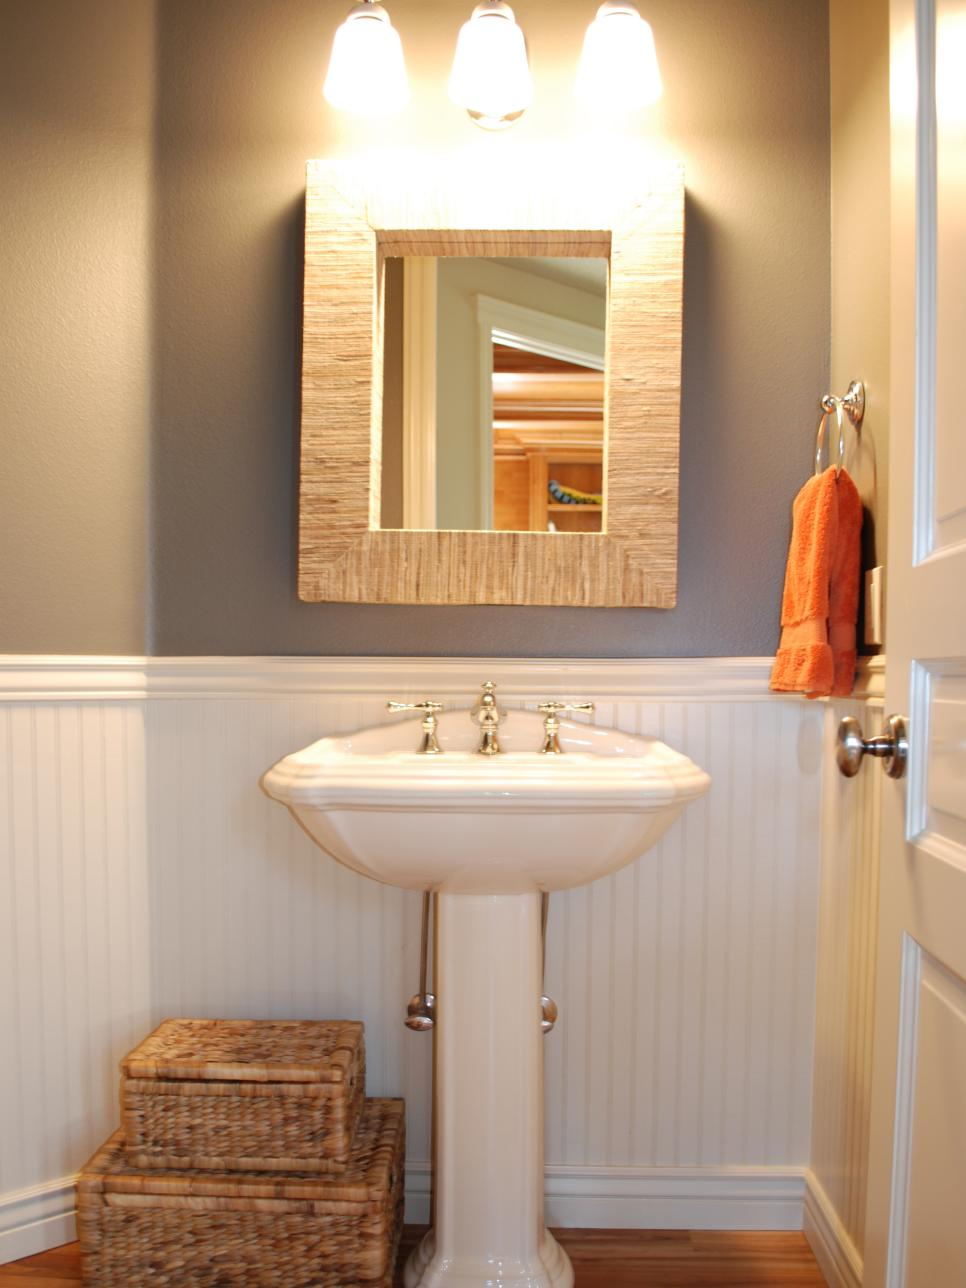 12 clever bathroom storage ideas hgtv Hgtv bathroom remodel pictures